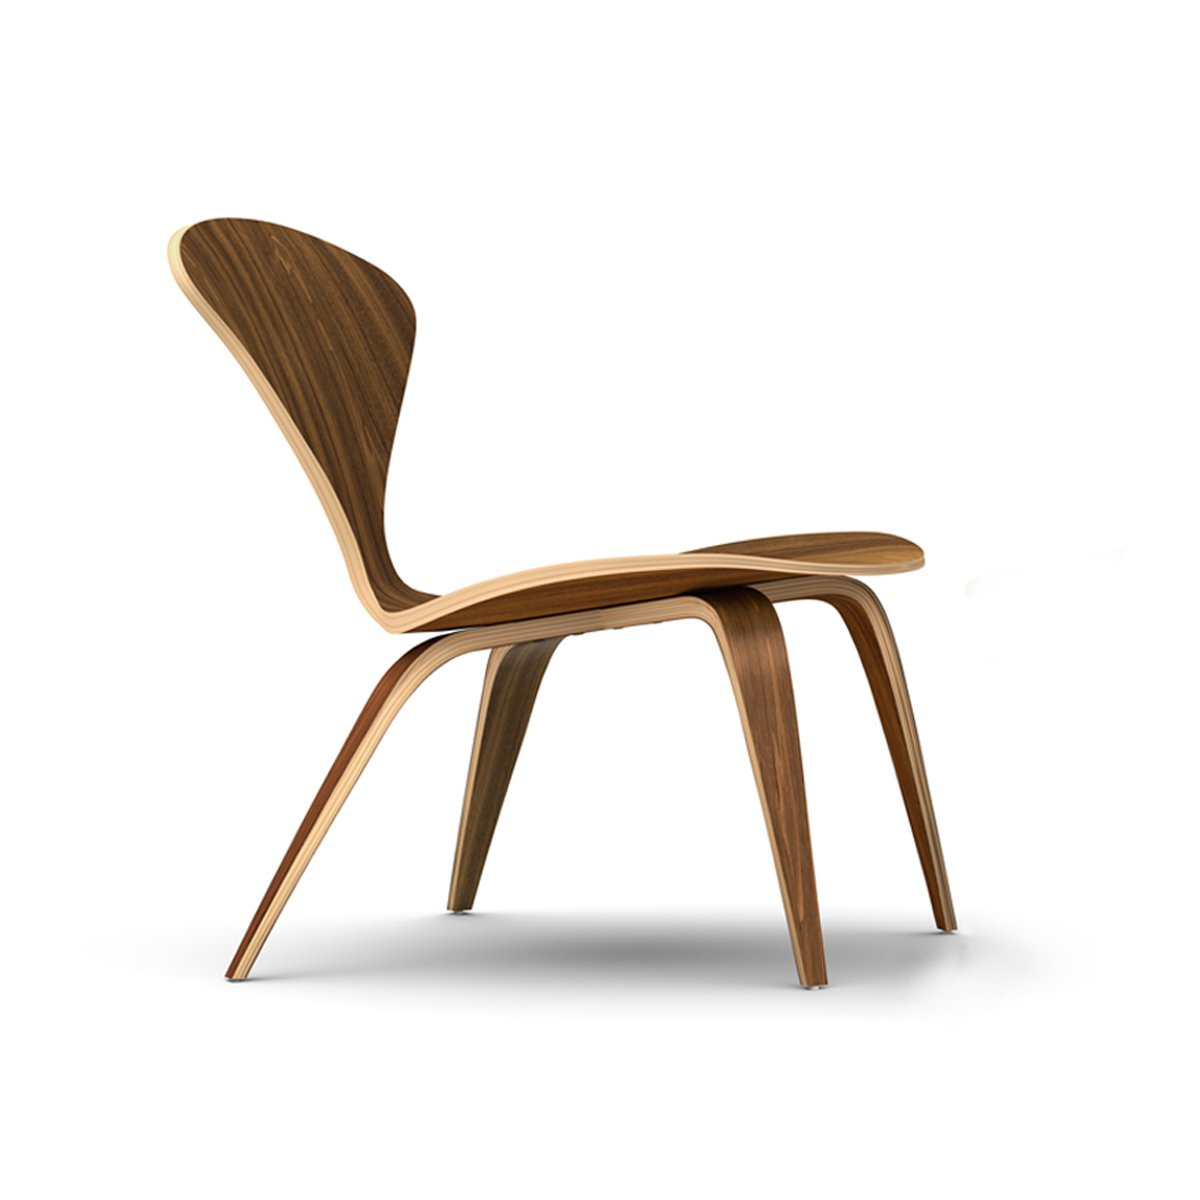 A similar design to the Lounge Arm Chair, the Lounge Side Chair has a welcoming shape that evokes Norman Cherner's 1958 design.  100+ Best Modern Seating Designs by Dwell from Reviving Classics with The Cherner Chair Company